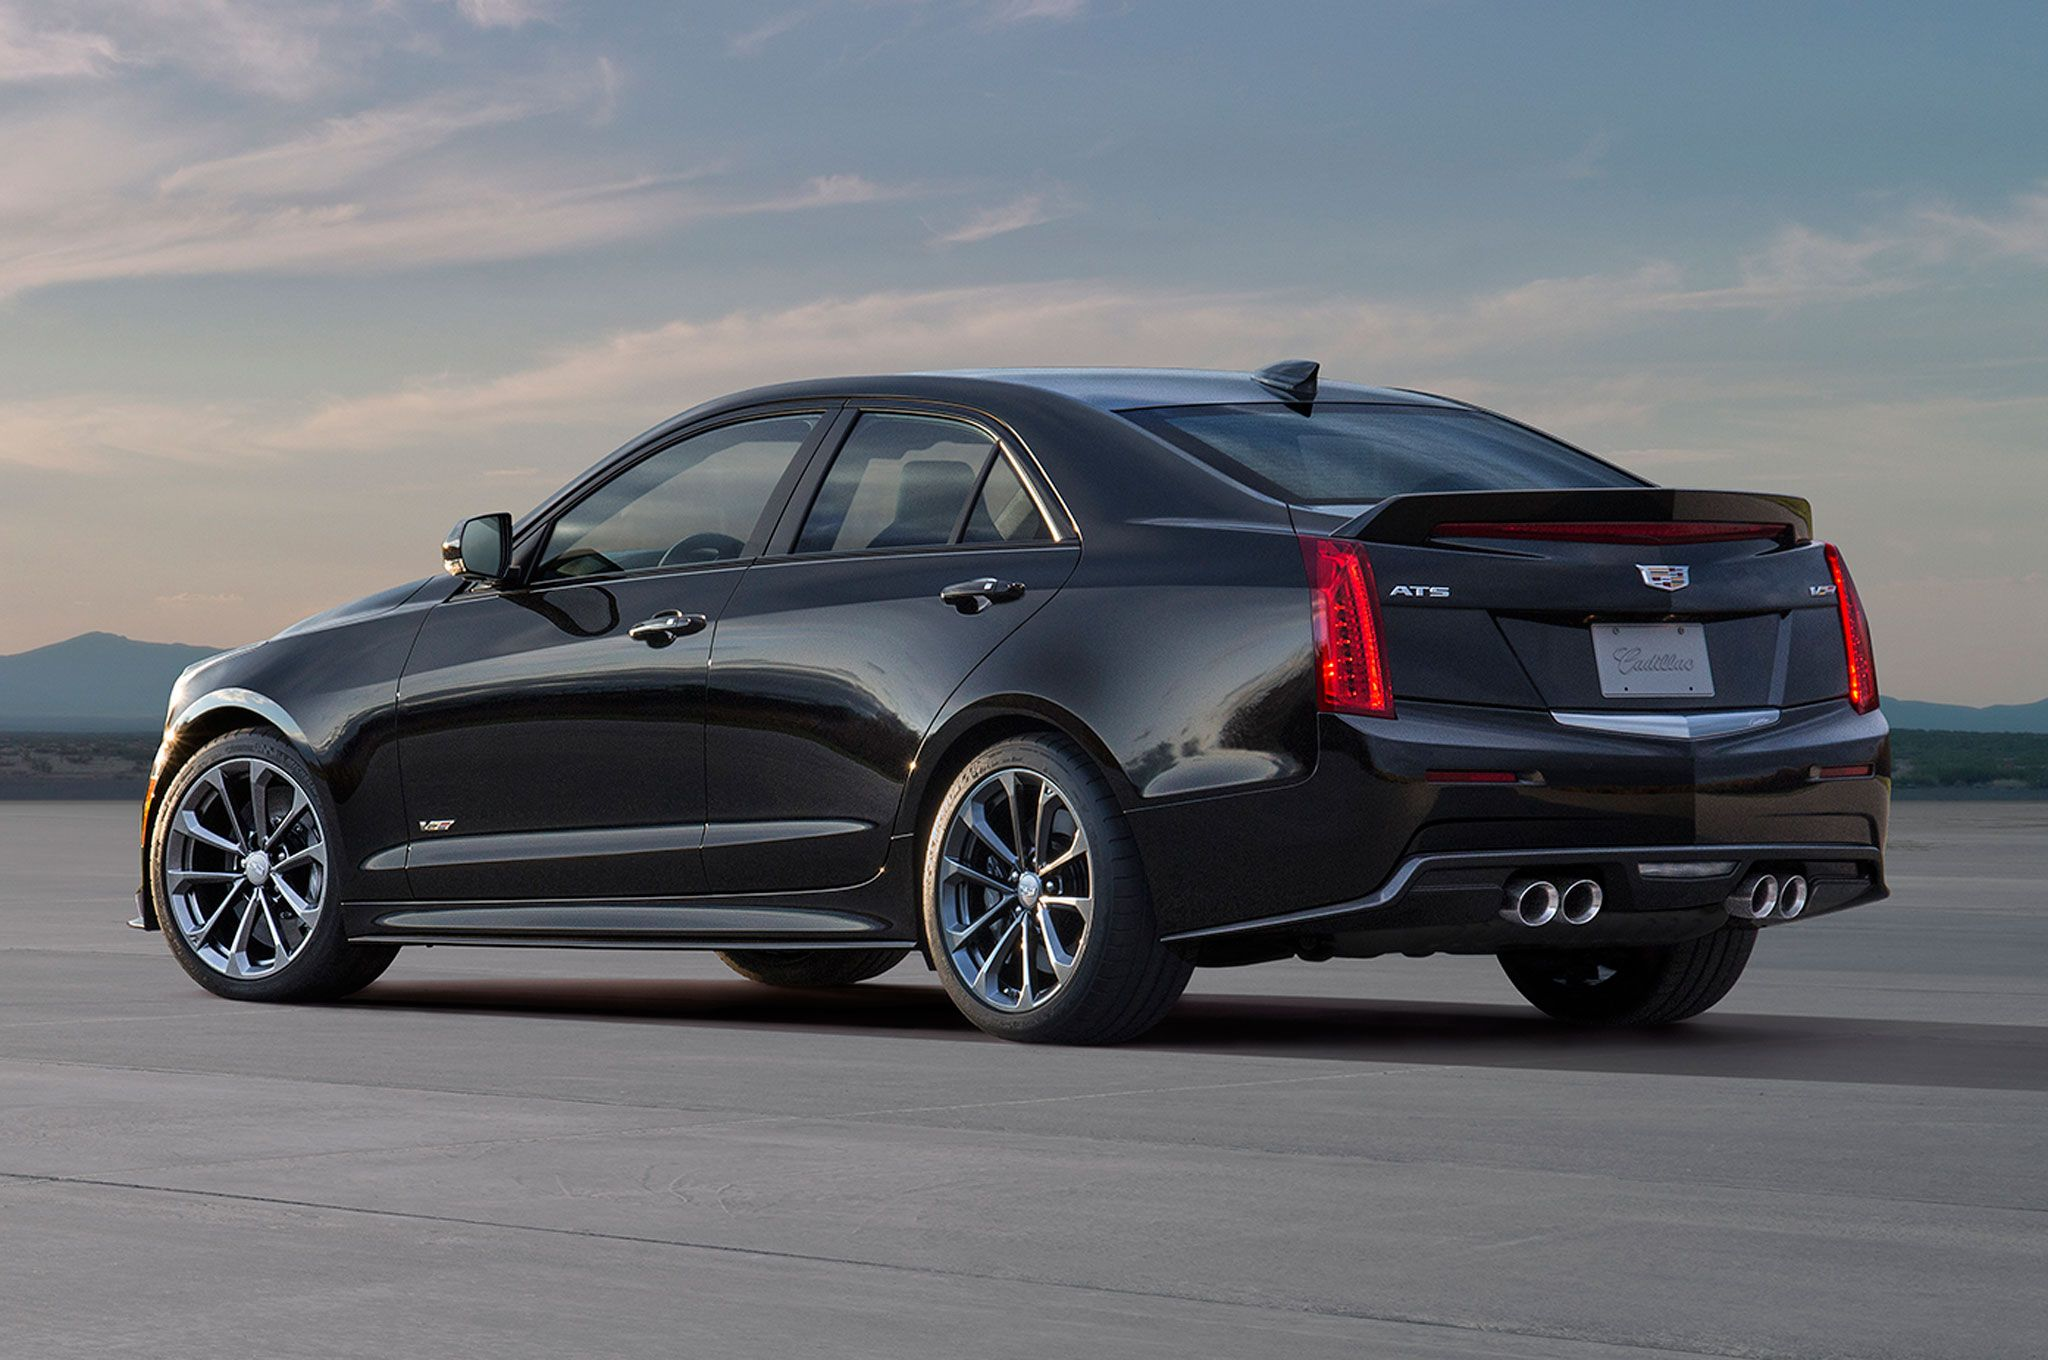 Enjoy performance at your command in the 2017 cadillac ats v sedan the ats v sedan is a fusion of proven motorsport pedigree and pure engineering